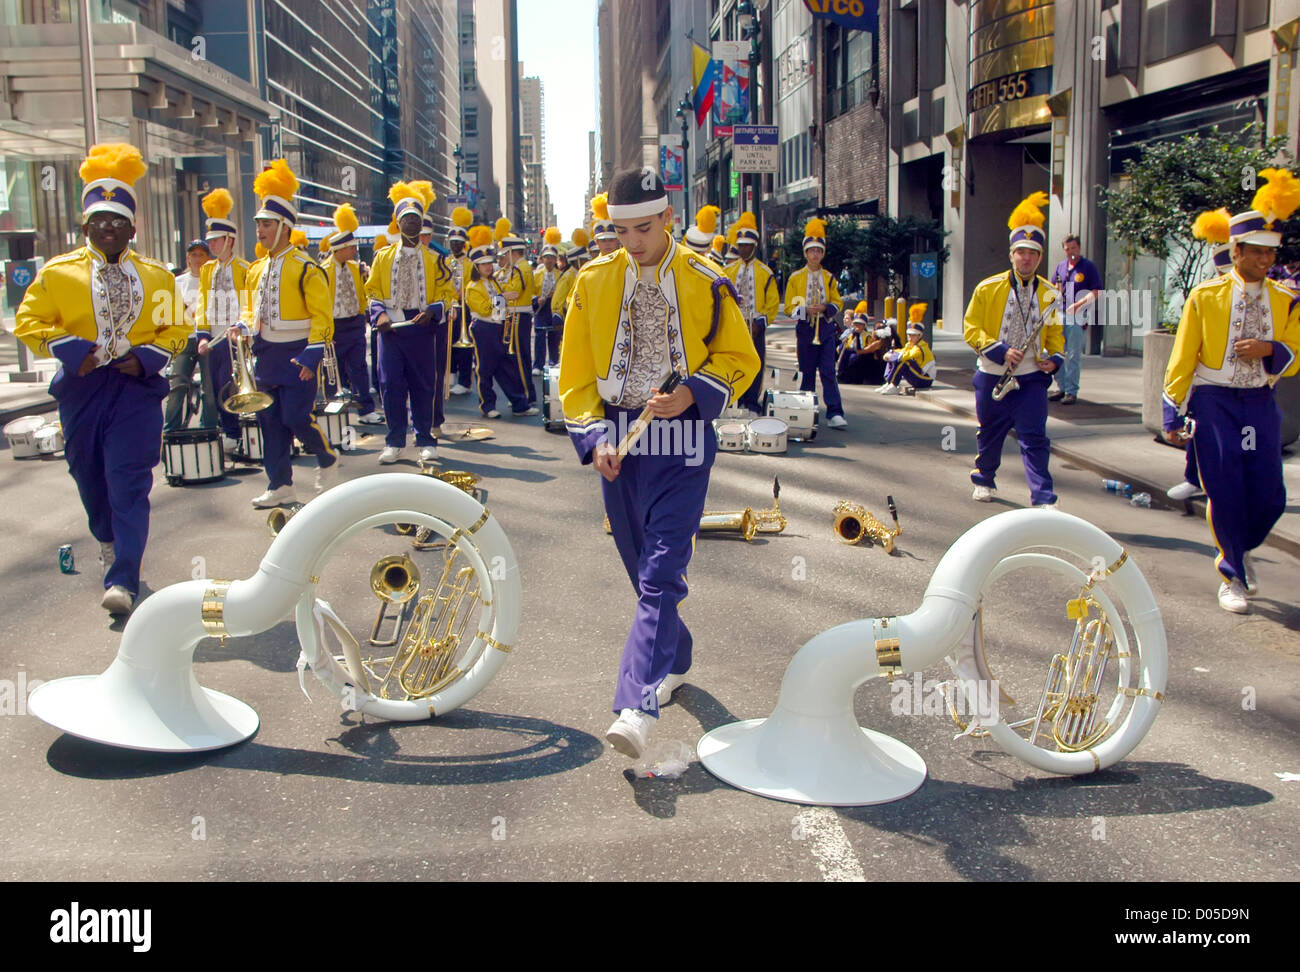 Labor Day Parade Stock Photos & Labor Day Parade Stock Images - Alamy